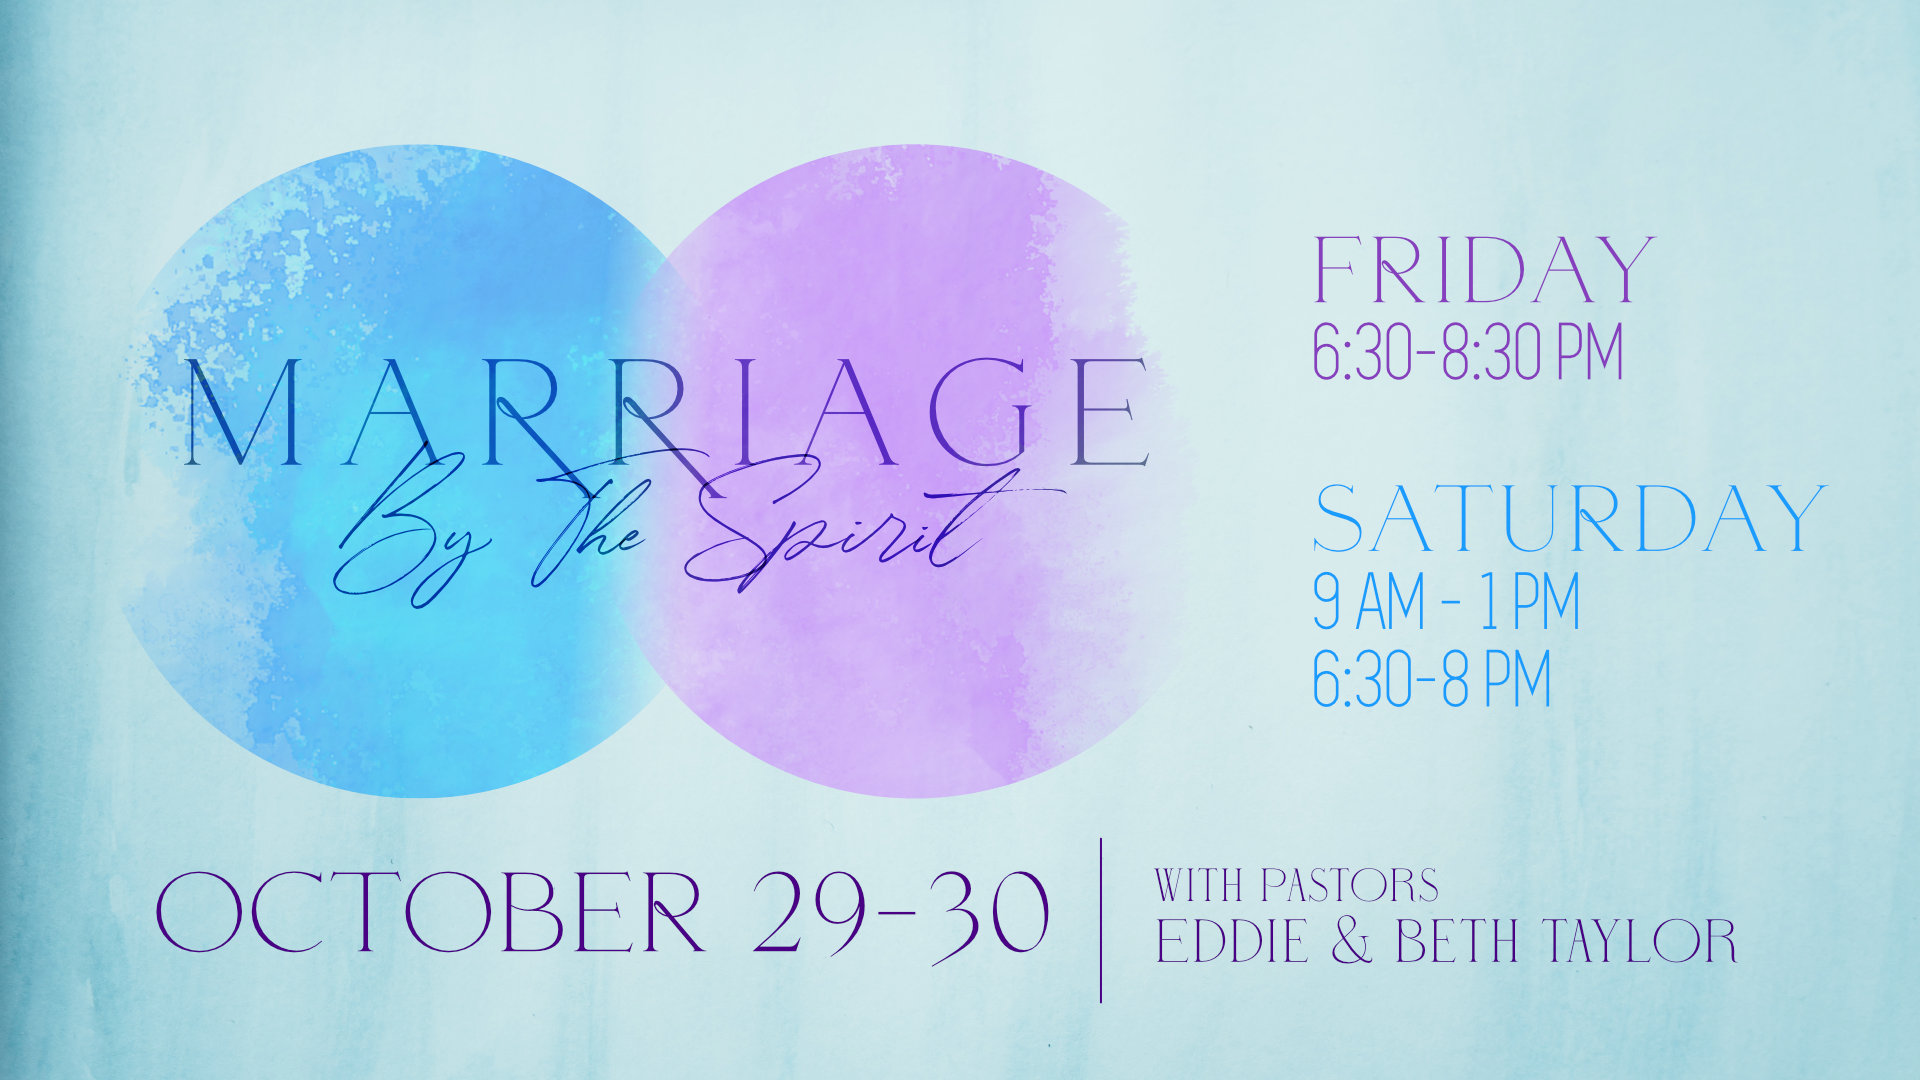 Marriage By the Spirit - October 29 & 30 with Pastors Eddie & Beth Taylor. Friday 6:30 - 8:30 PM. Saturday 9 AM - 1 PM and 6:30 - 8 PM.